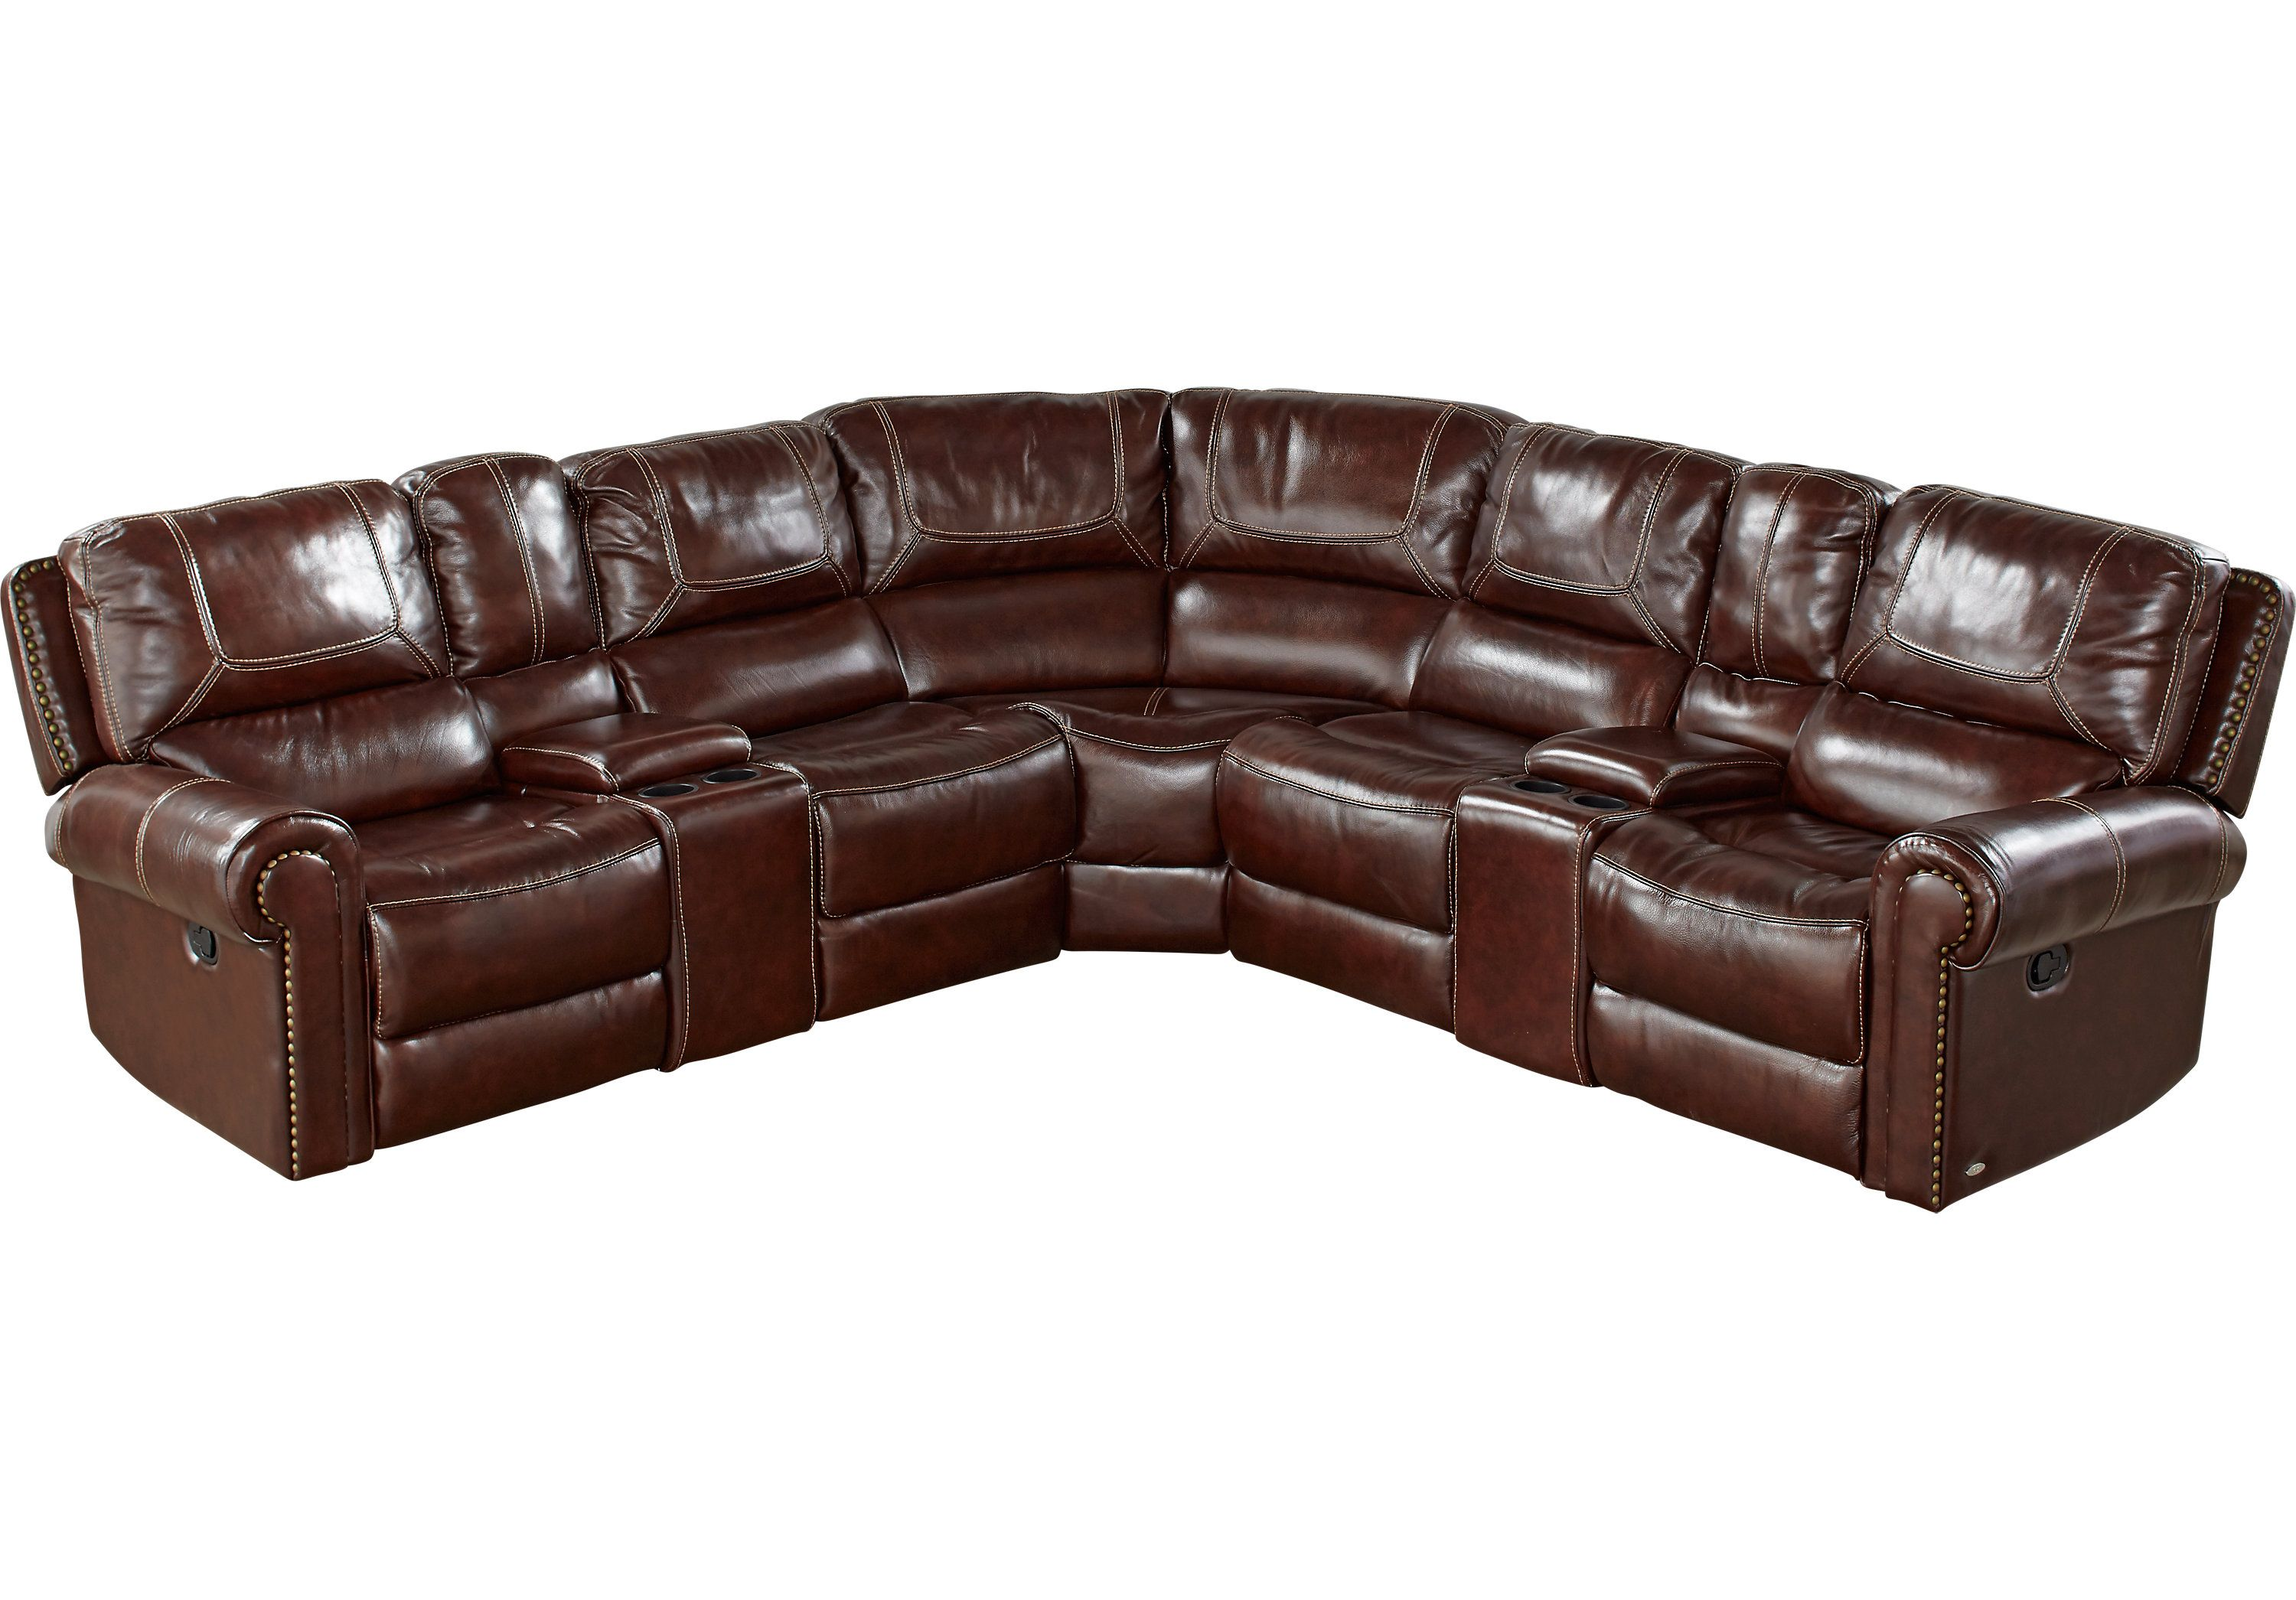 Sensational Cindy Crawford Home Campania Brown Leather 7 Pc Reclining Bralicious Painted Fabric Chair Ideas Braliciousco